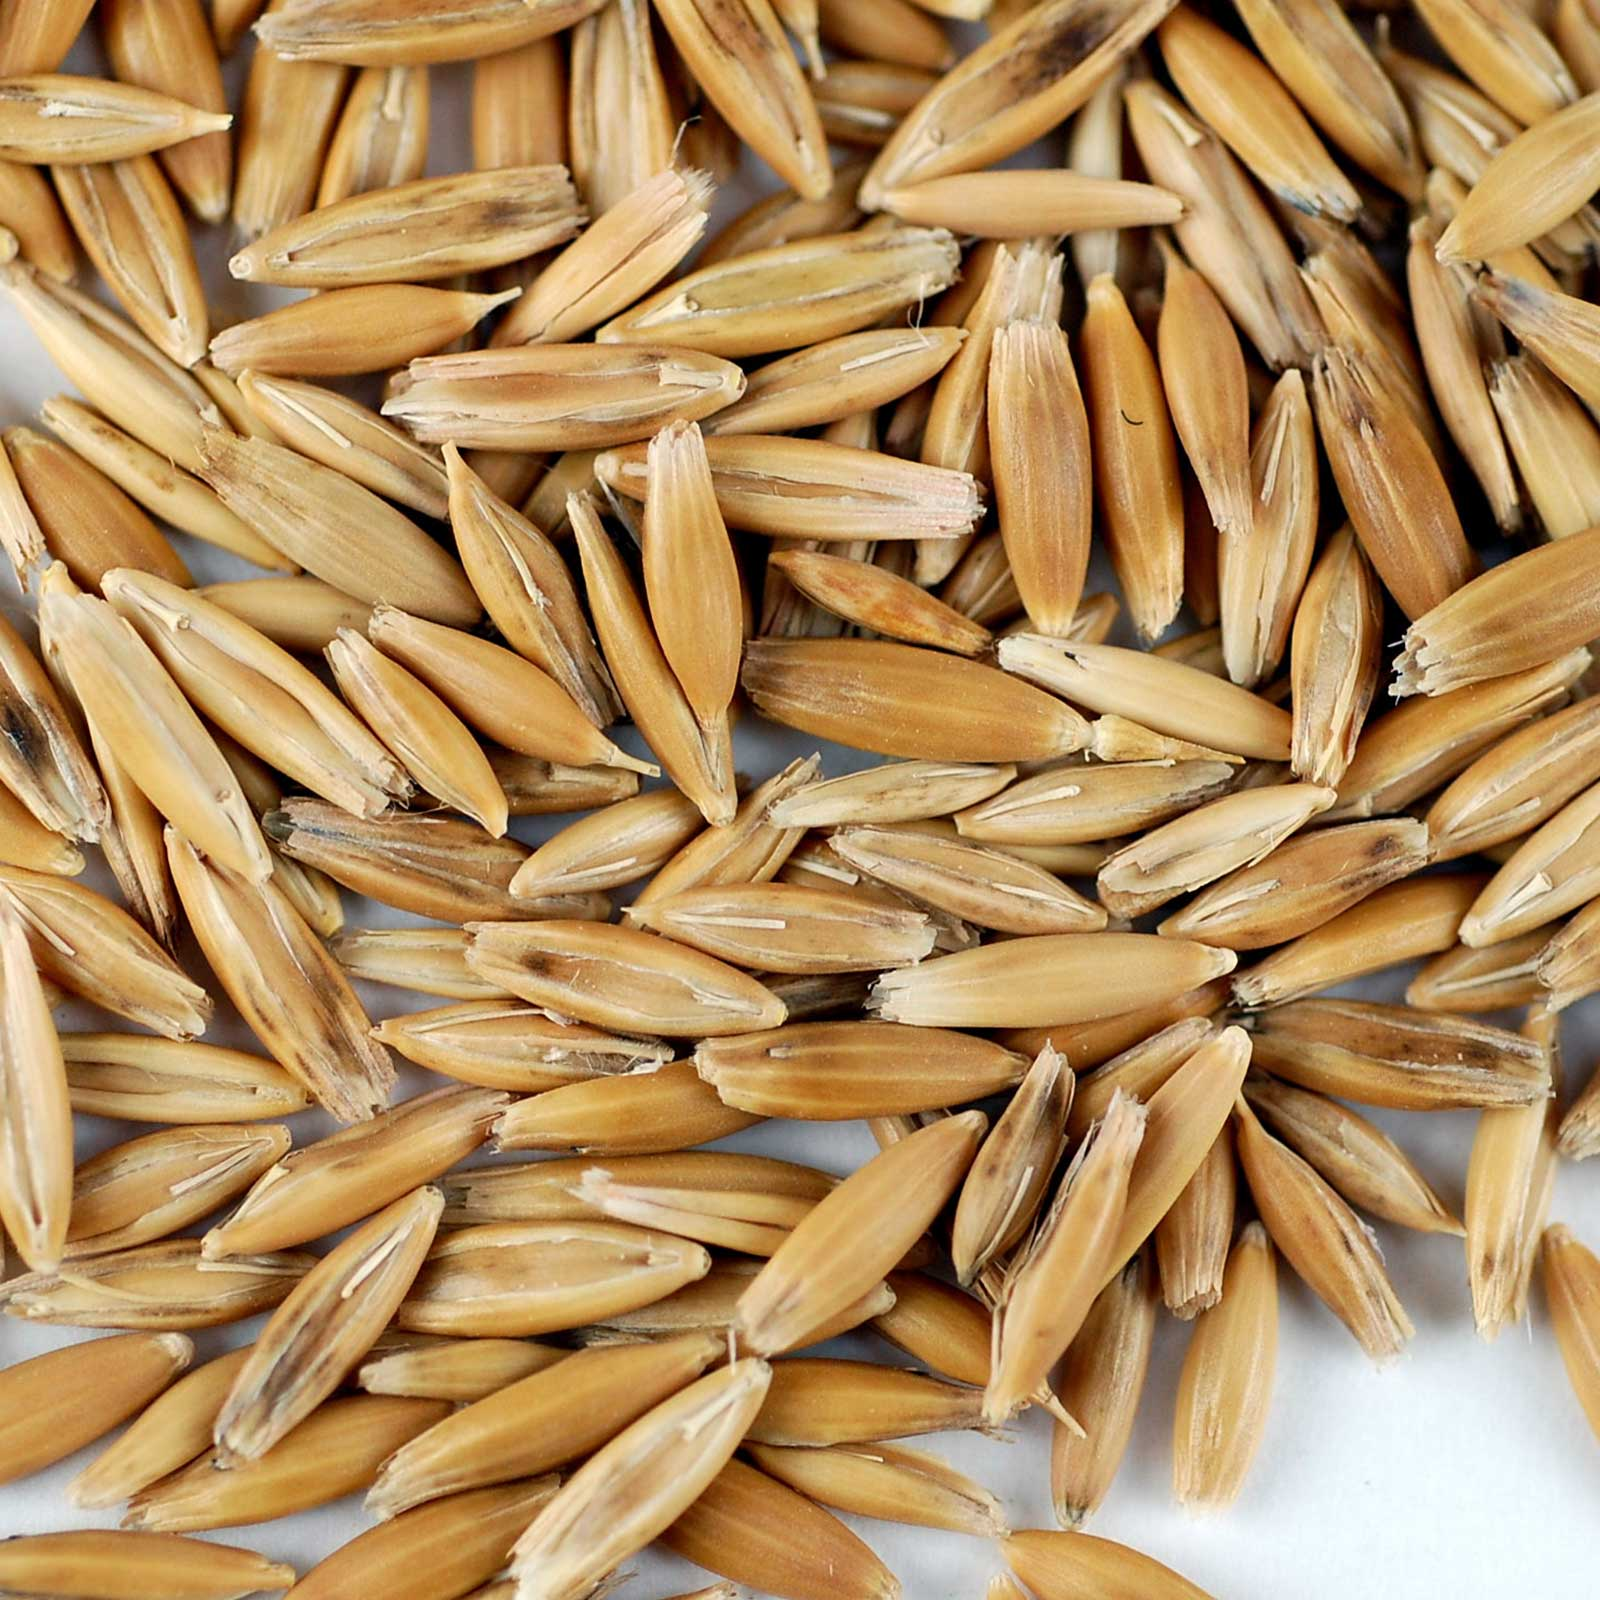 hight resolution of organic non gmo whole oat grain seeds with husk intact 3 5 lb re sealable can oats seed grains for sprouting oat grass animal feed storage more